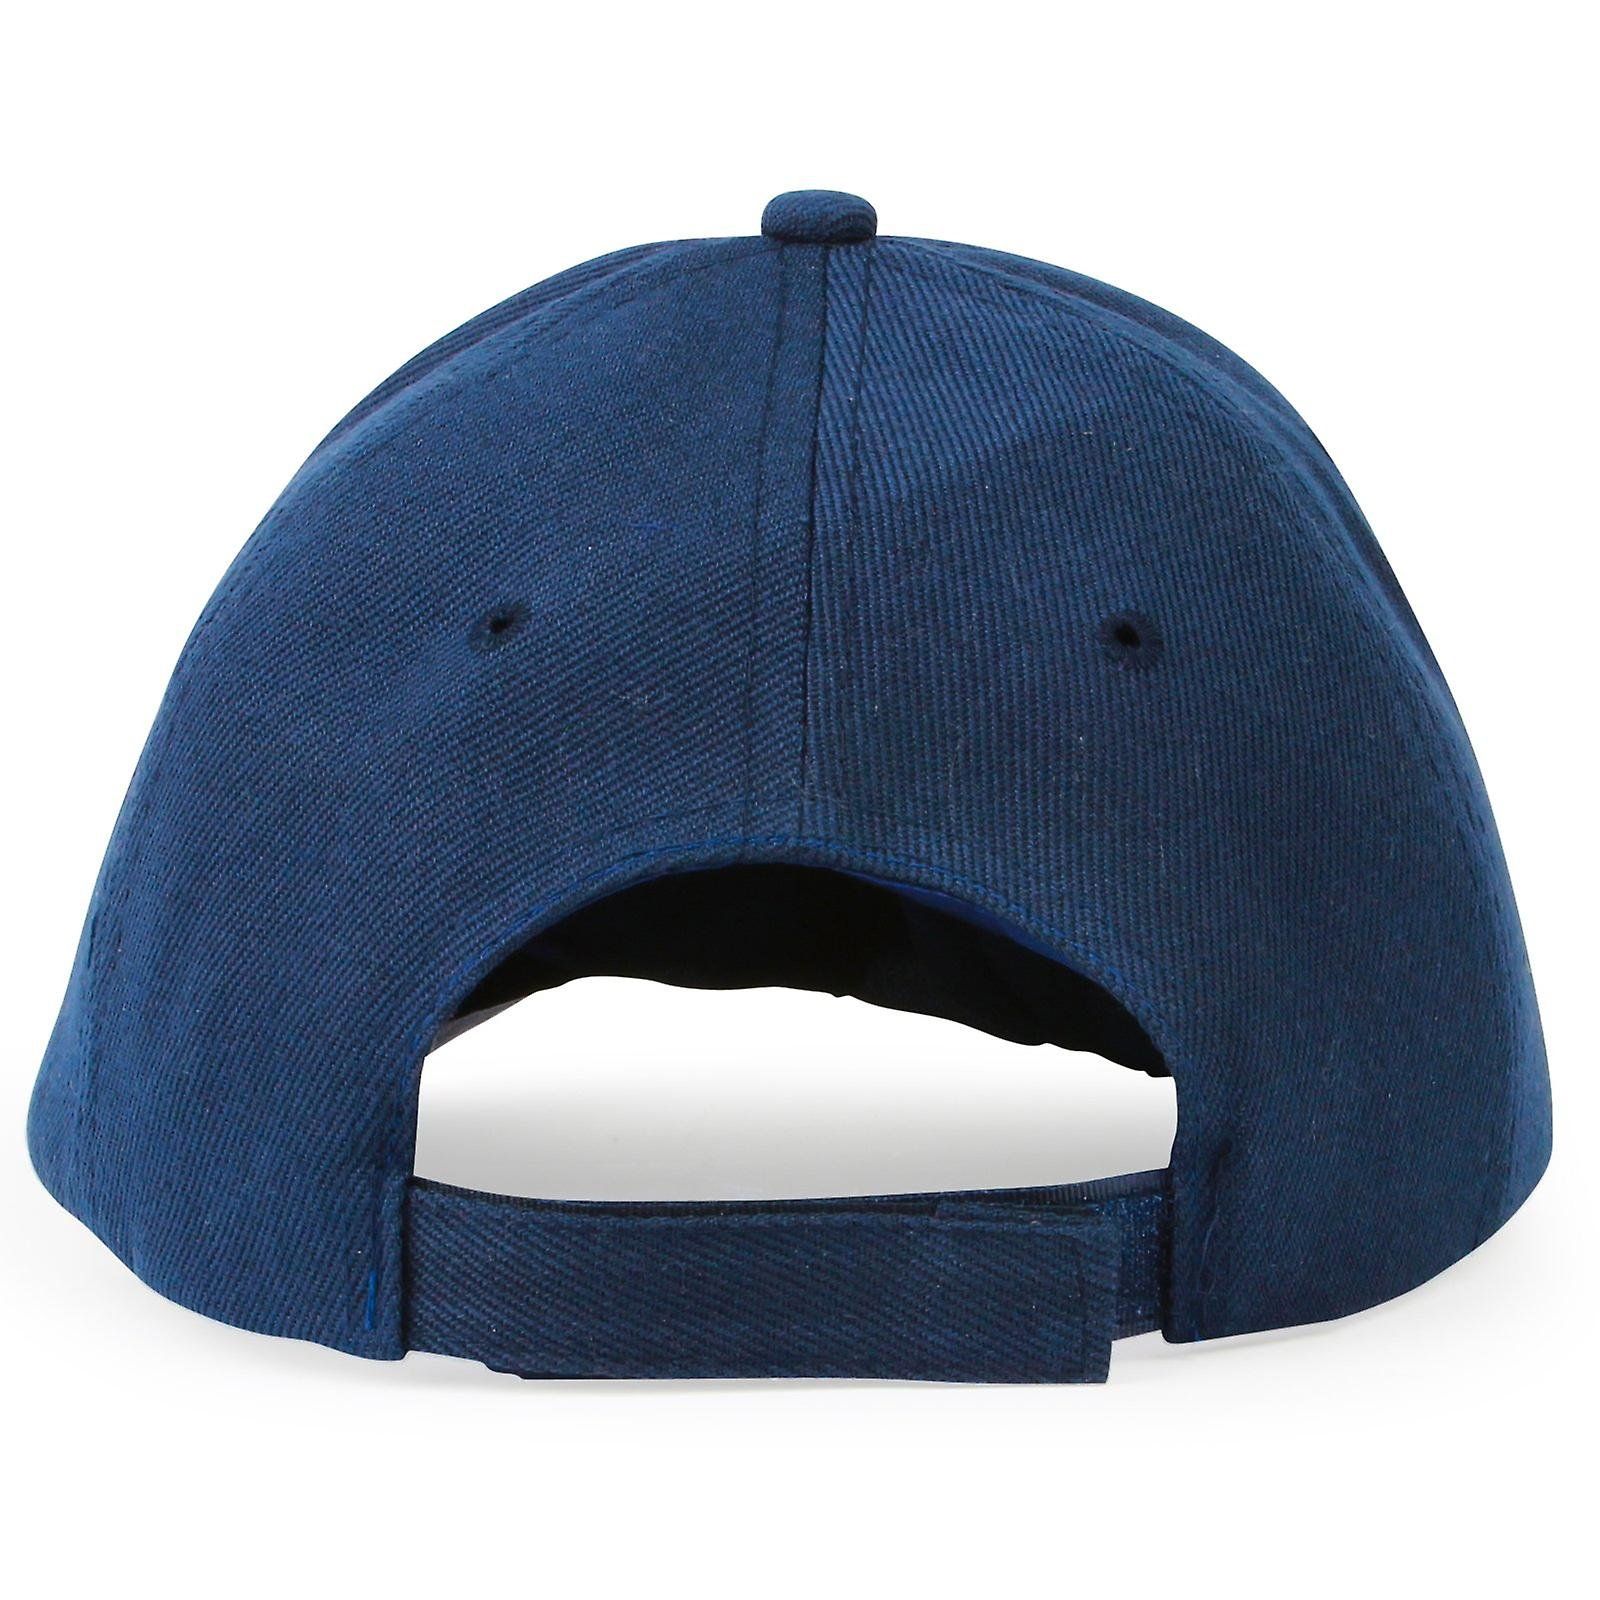 28a9a7364e0 Pure Silk Lined Sports Cap- Reduce Damage To Thinning Hair